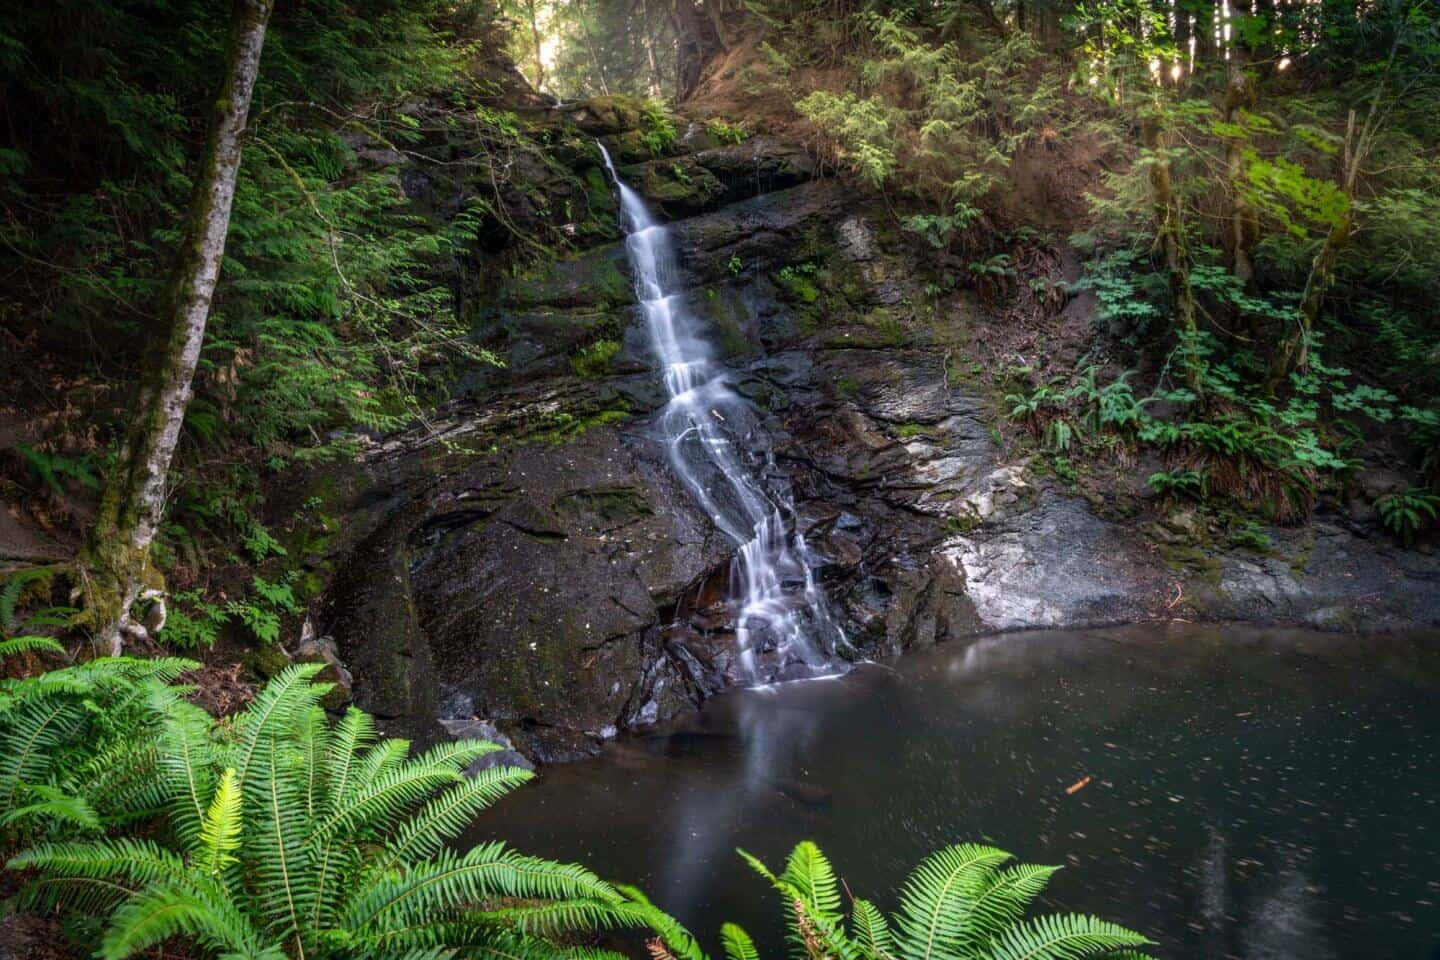 The not-so-secret waterfall at Colliery Dam Park near Nanaimo.